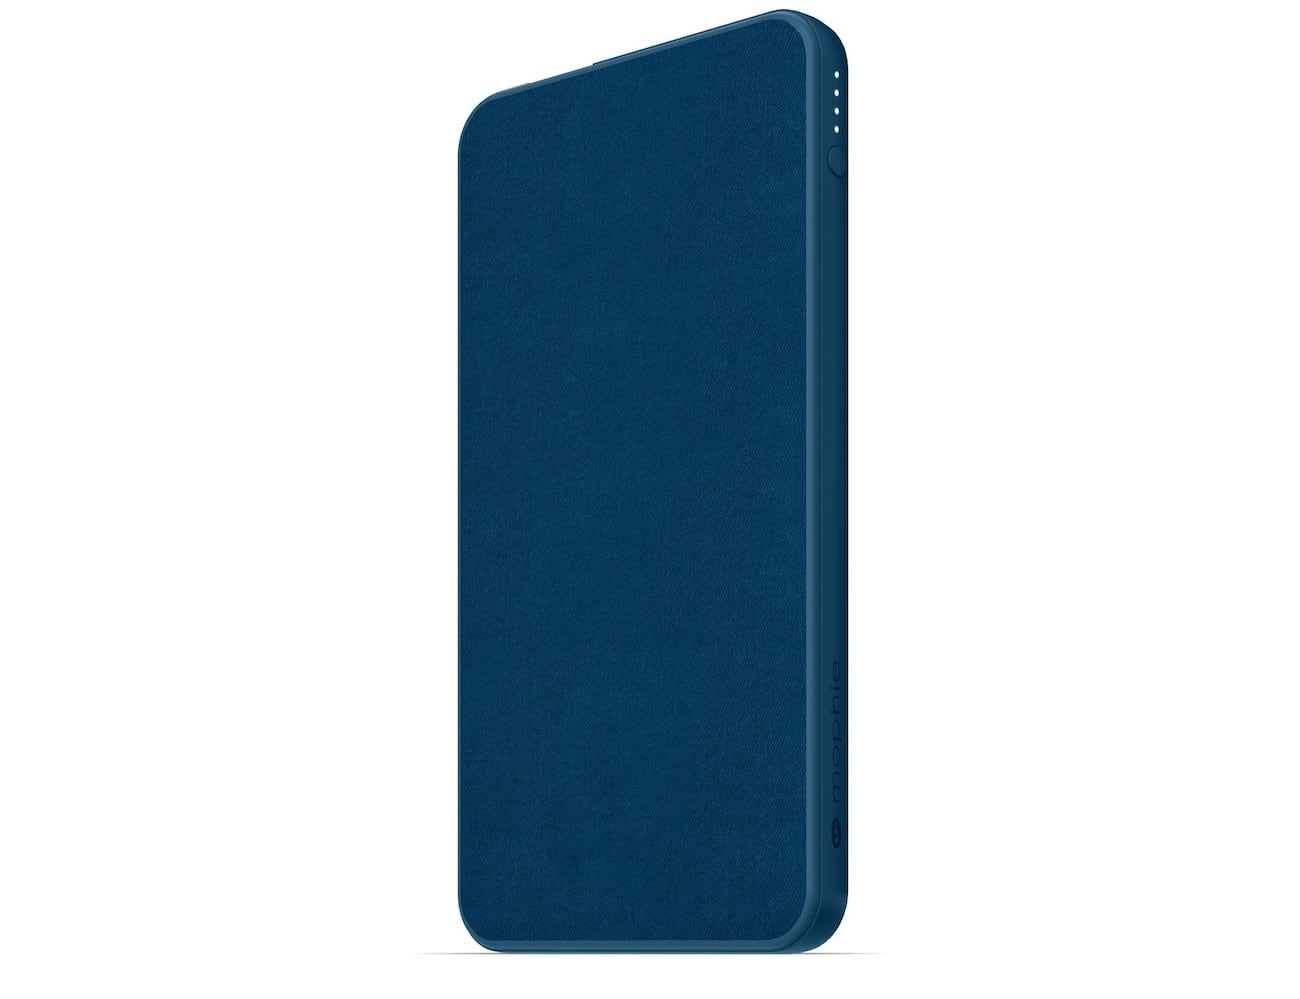 outlet store 53eba 1ffac mophie powerstation mini 5,000mAh Fabric Portable Battery is a stylish  pocket-sized charger